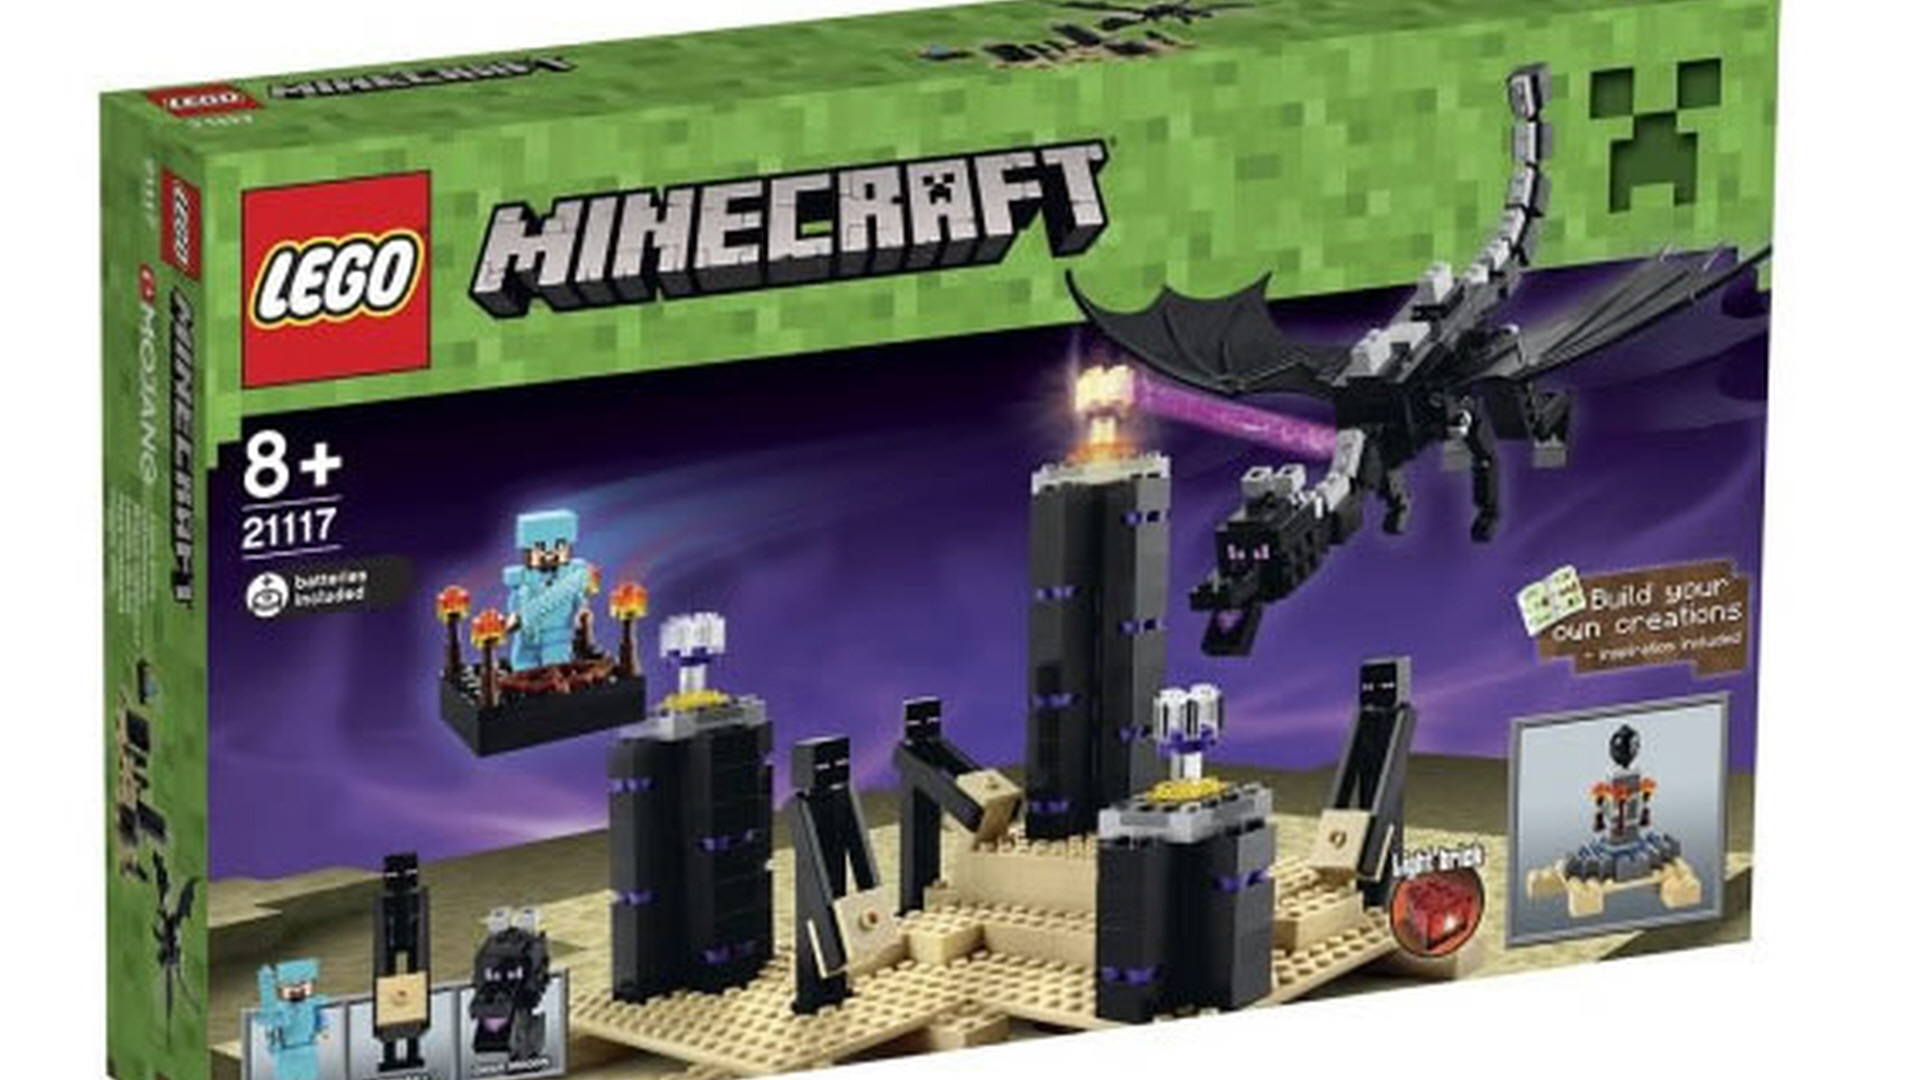 LEGO Minecraft Set Pictures Revealed 2015BrickUltra Home to LEGO News 1920x1080